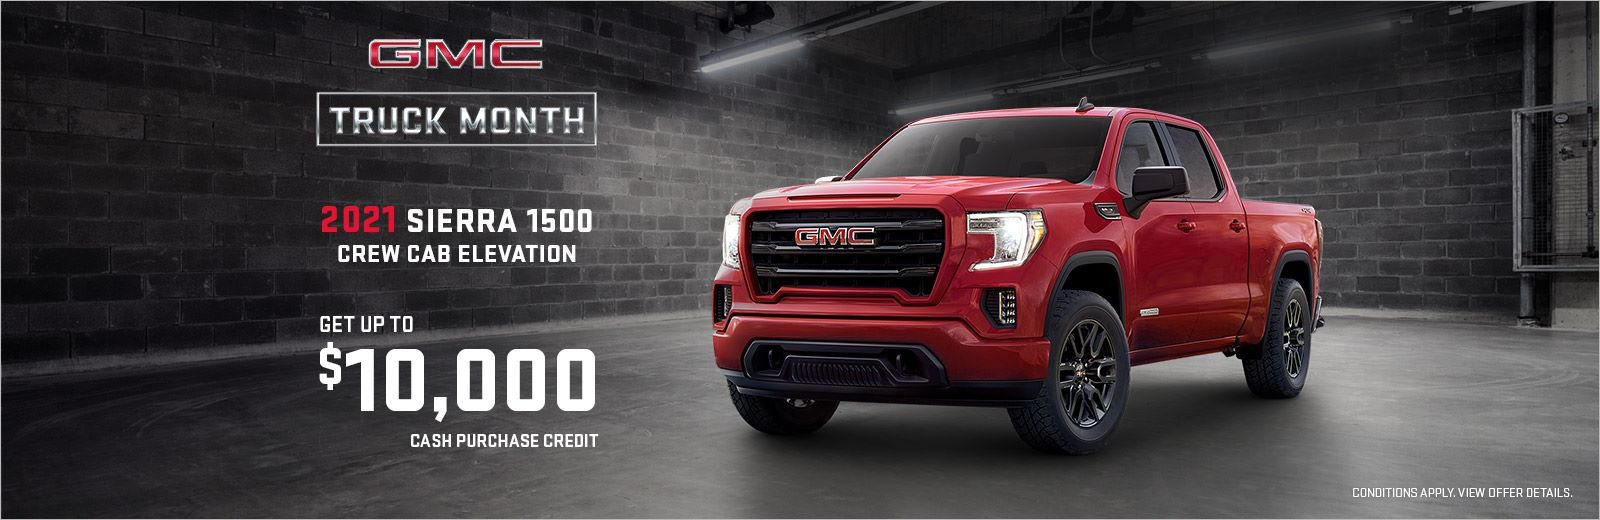 2021 gmc sierra elevation truck carter gm burnaby northshore bc